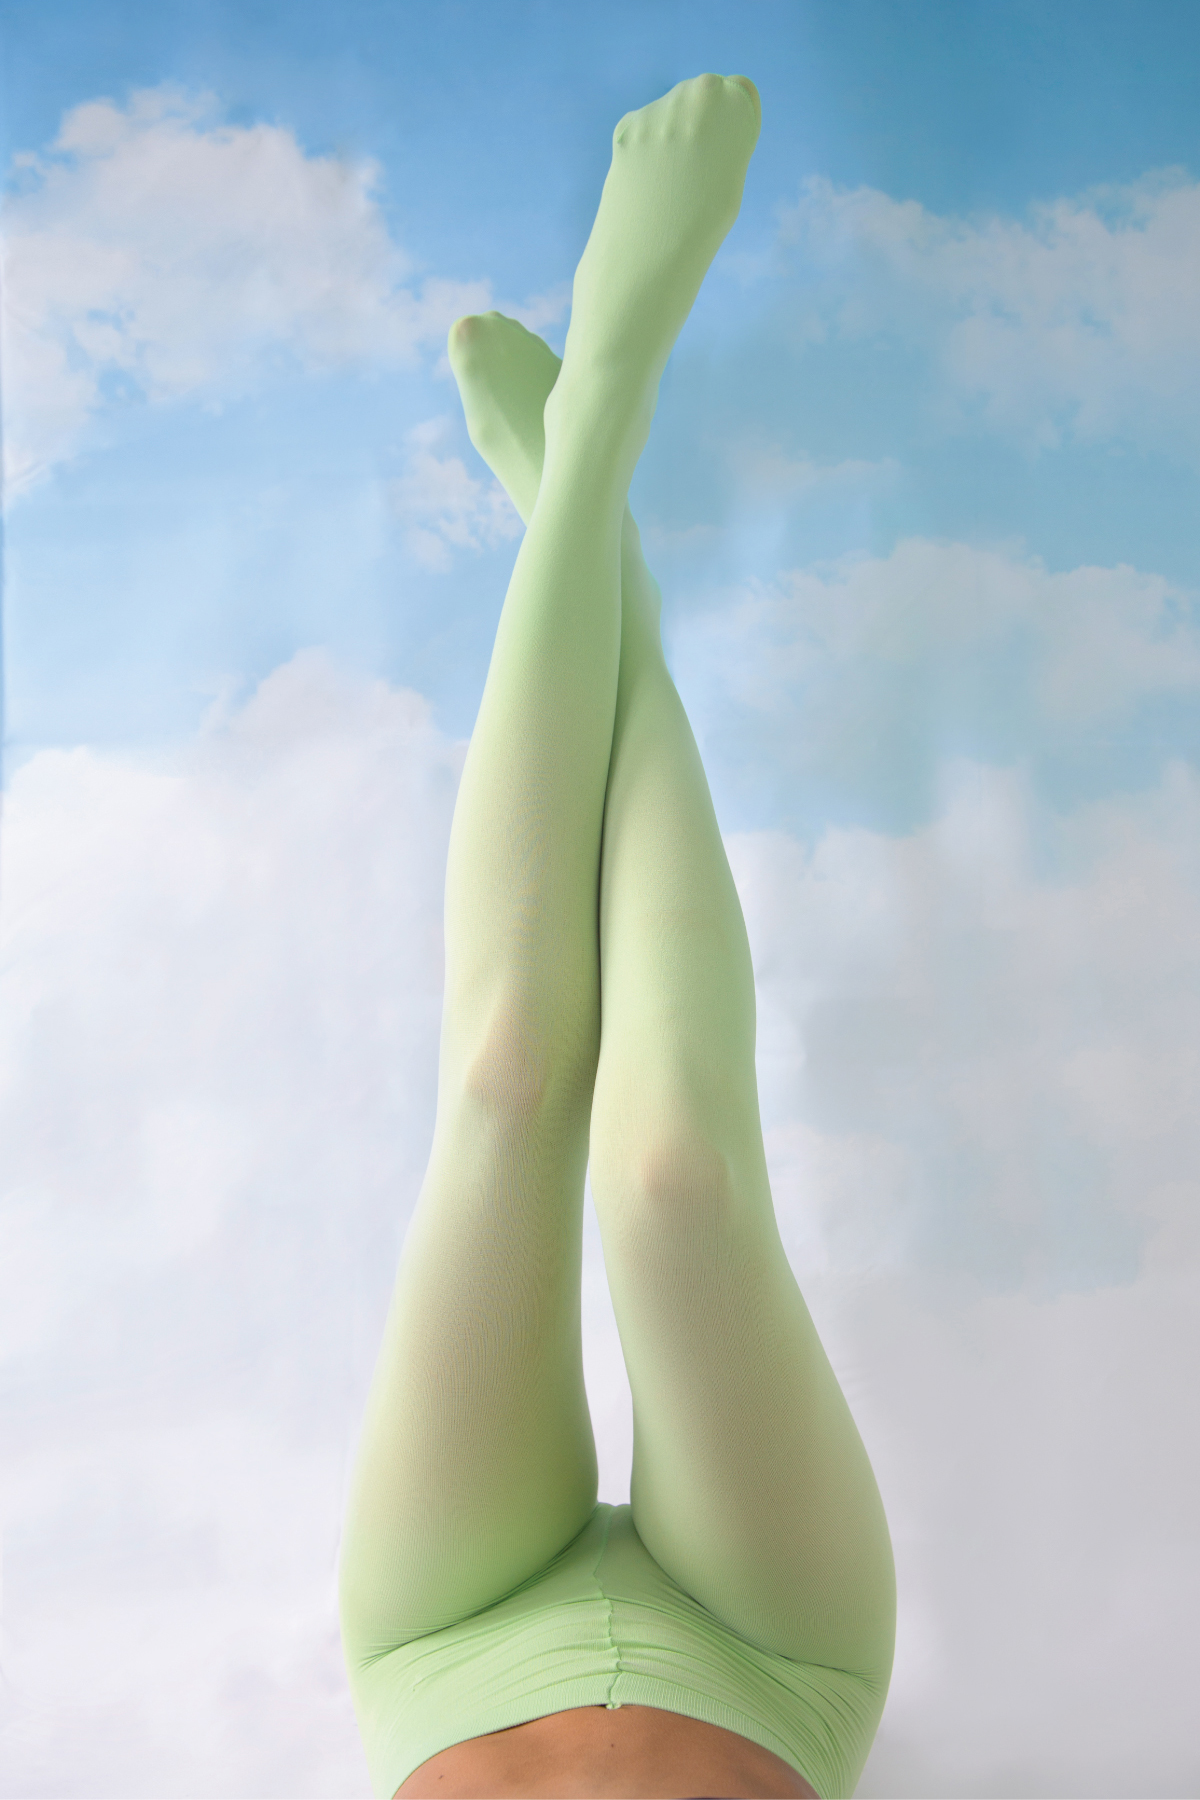 Legs with tights floating with a sky background